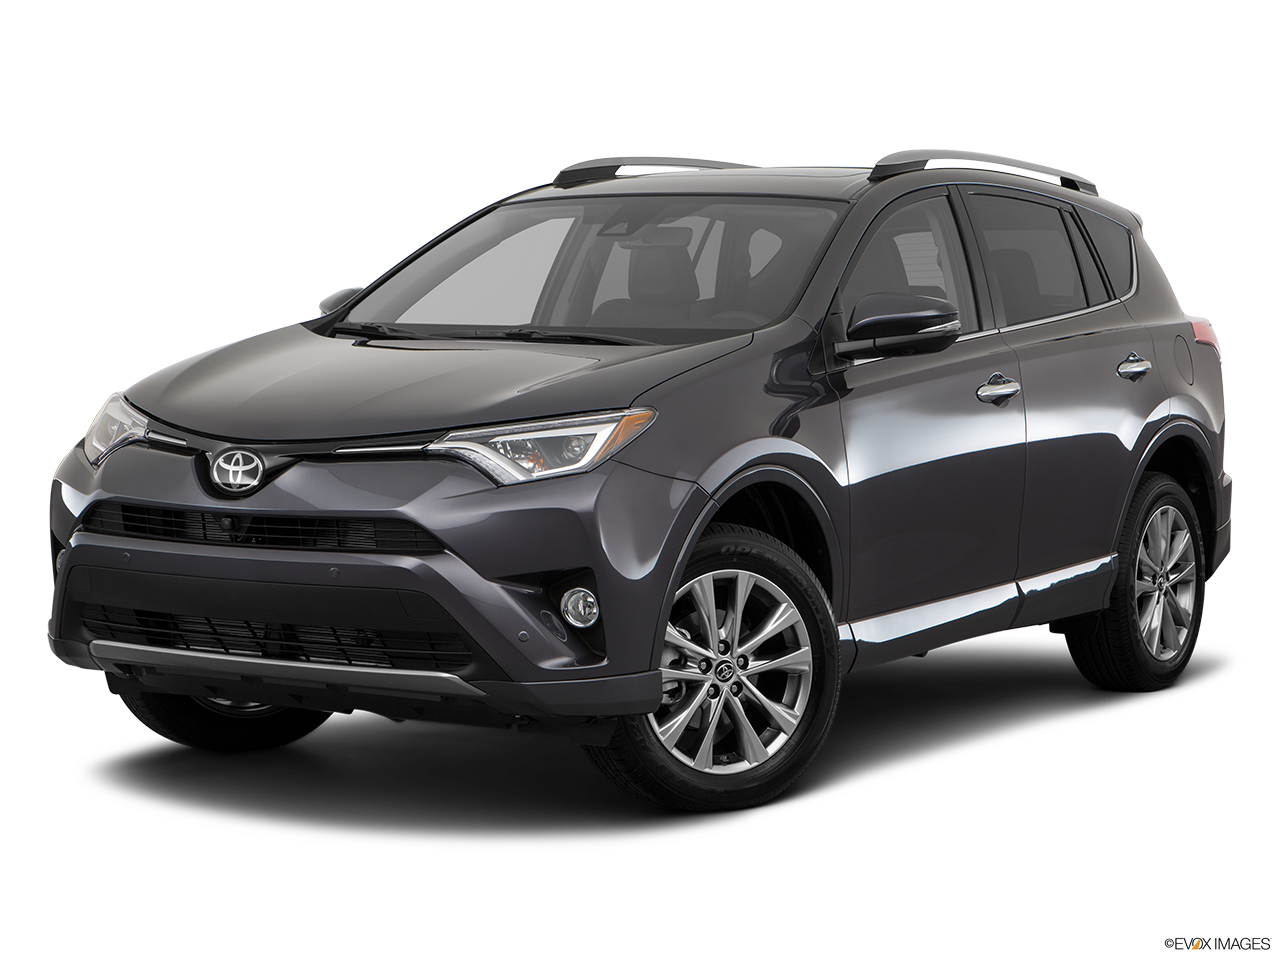 Test Drive A 2017 Toyota RAV4 at Moss Bros Toyota of Moreno Valley in Riverside